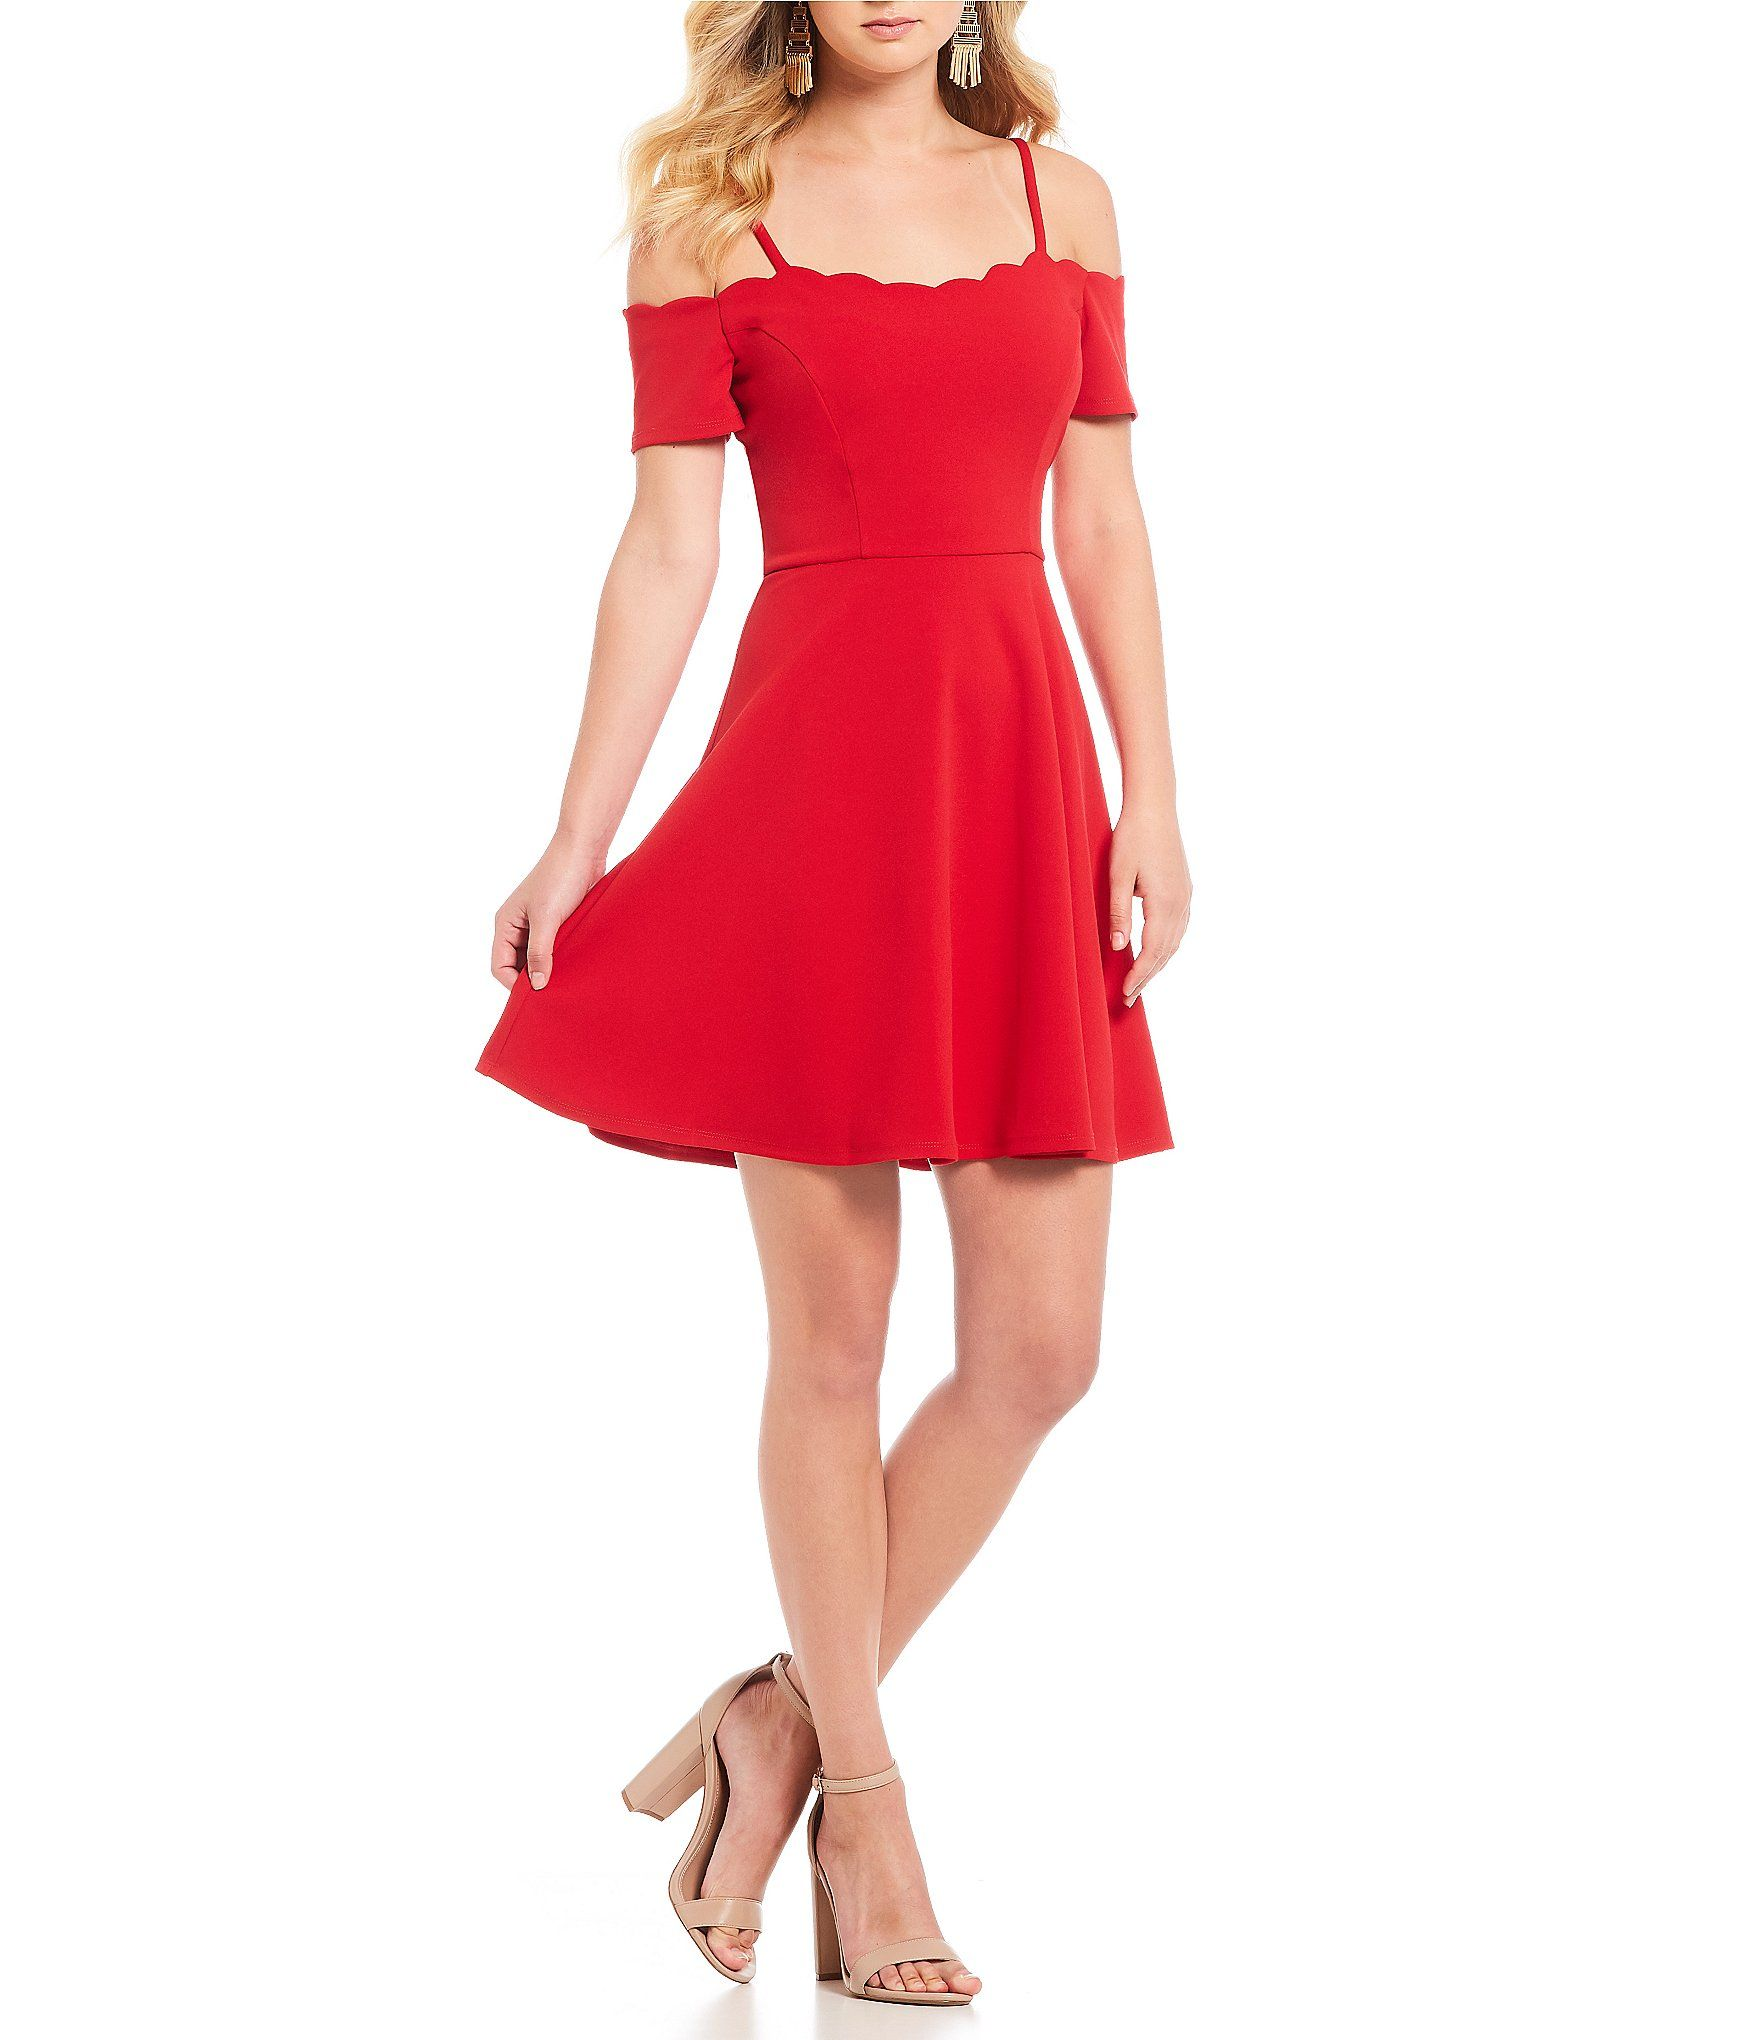 893e4a4d7ca In san francisco scalloped offtheshoulder fit and flare dress dillards also  off the shoulder rh pinterest